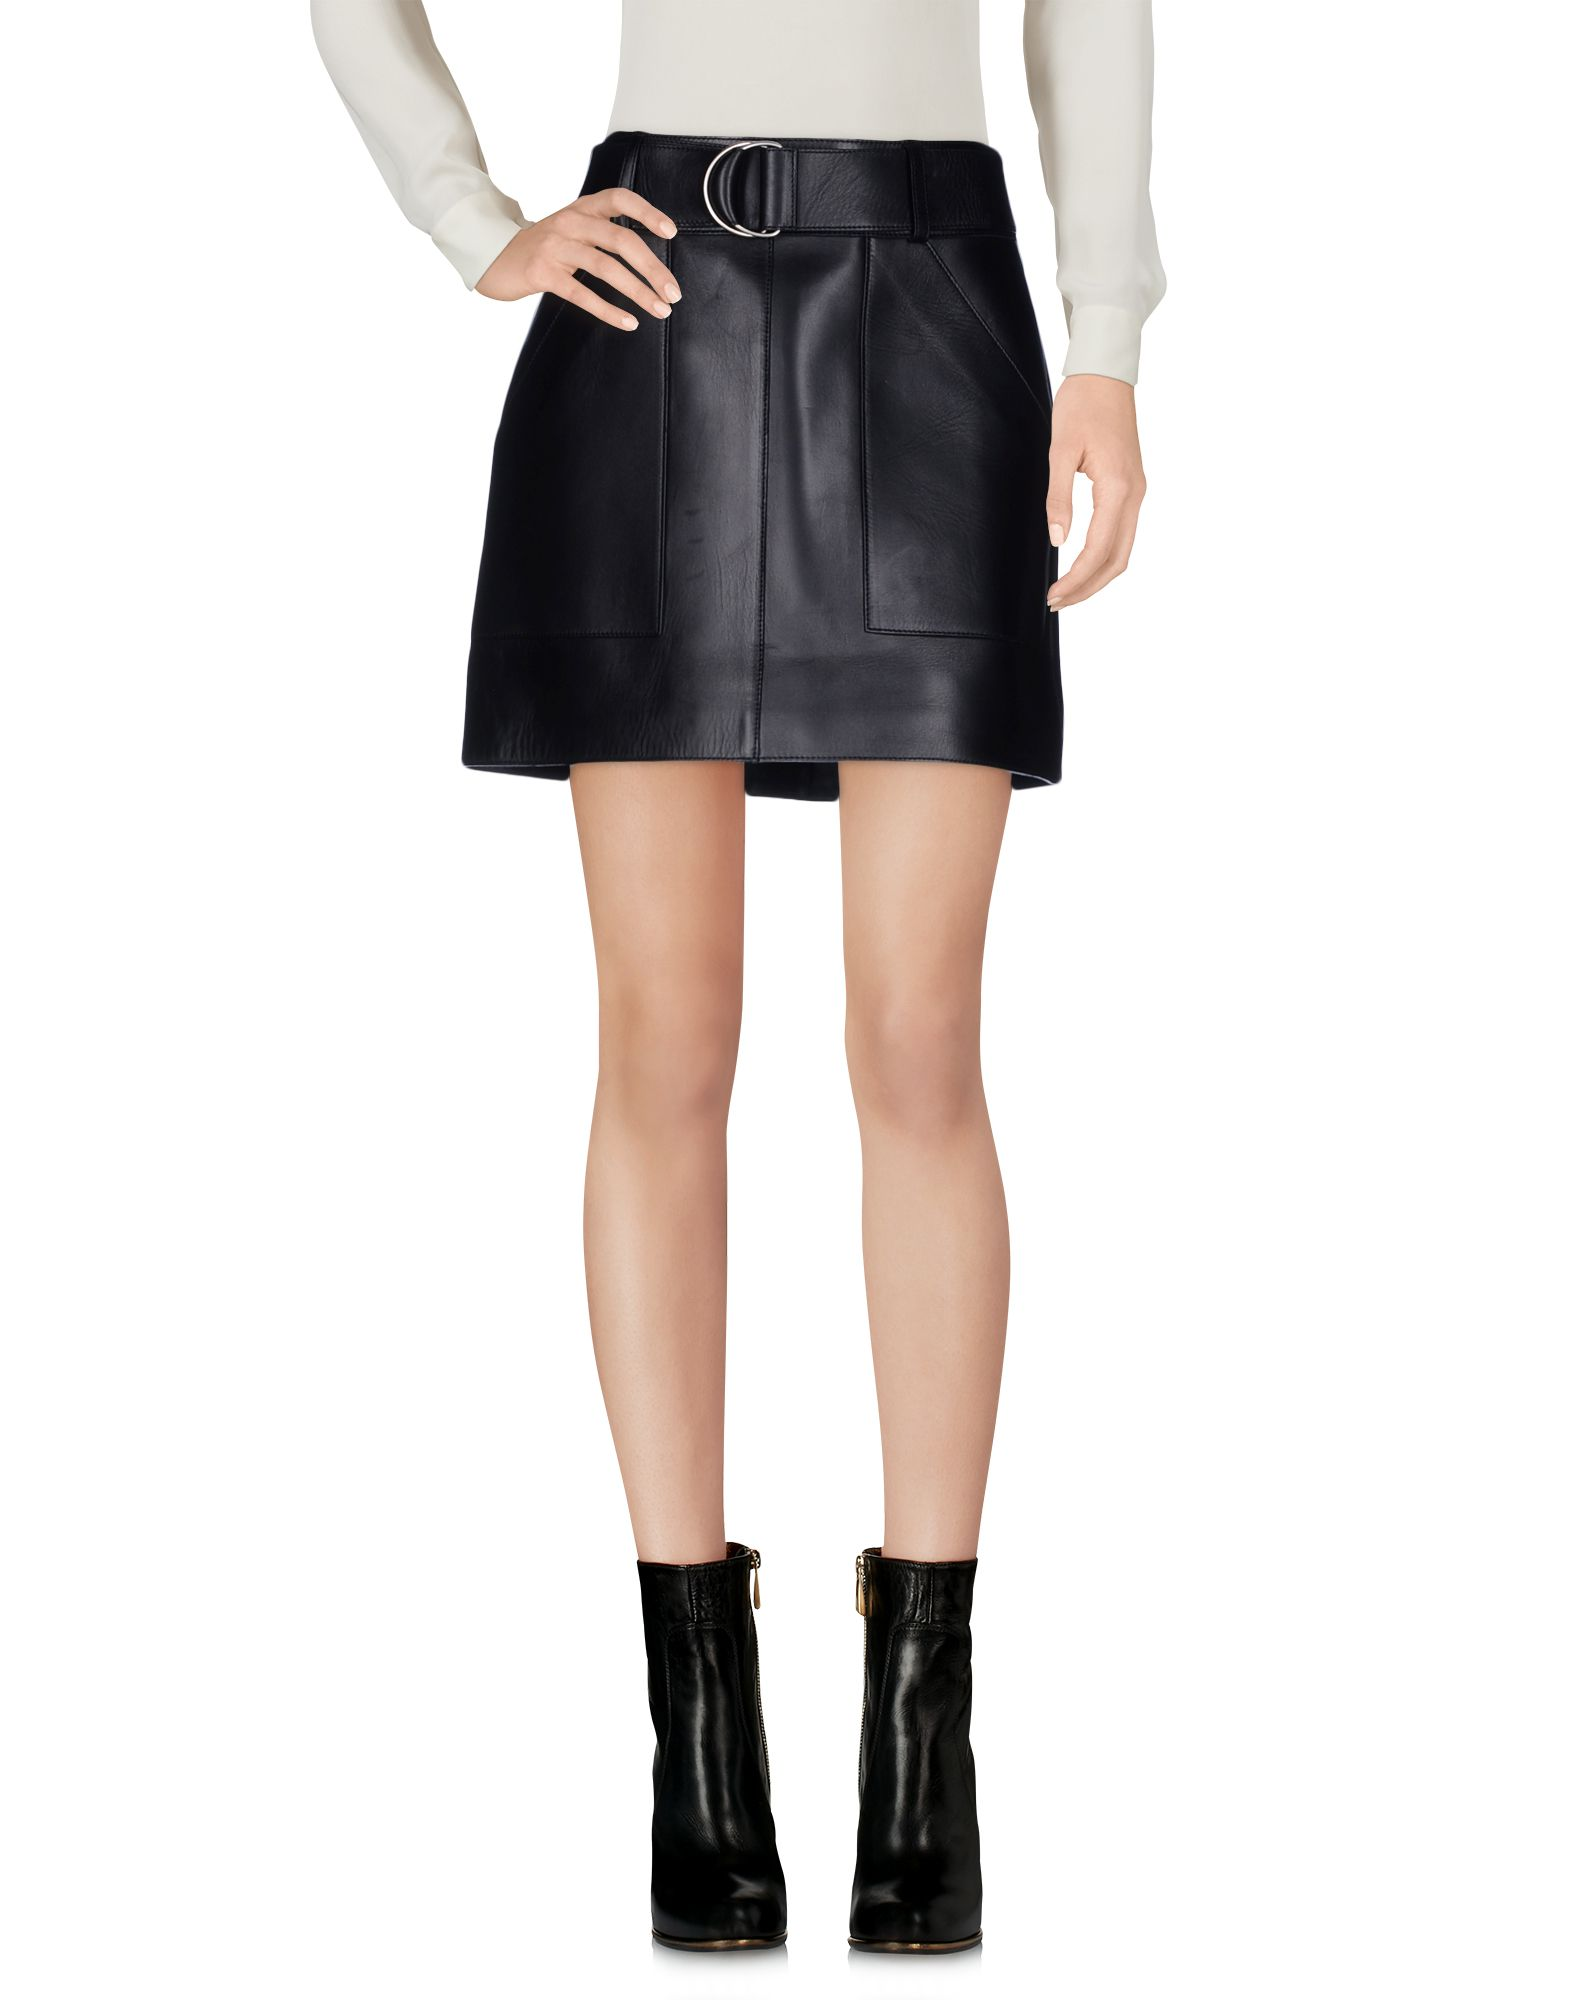 michael kors female  michael kors mini skirts